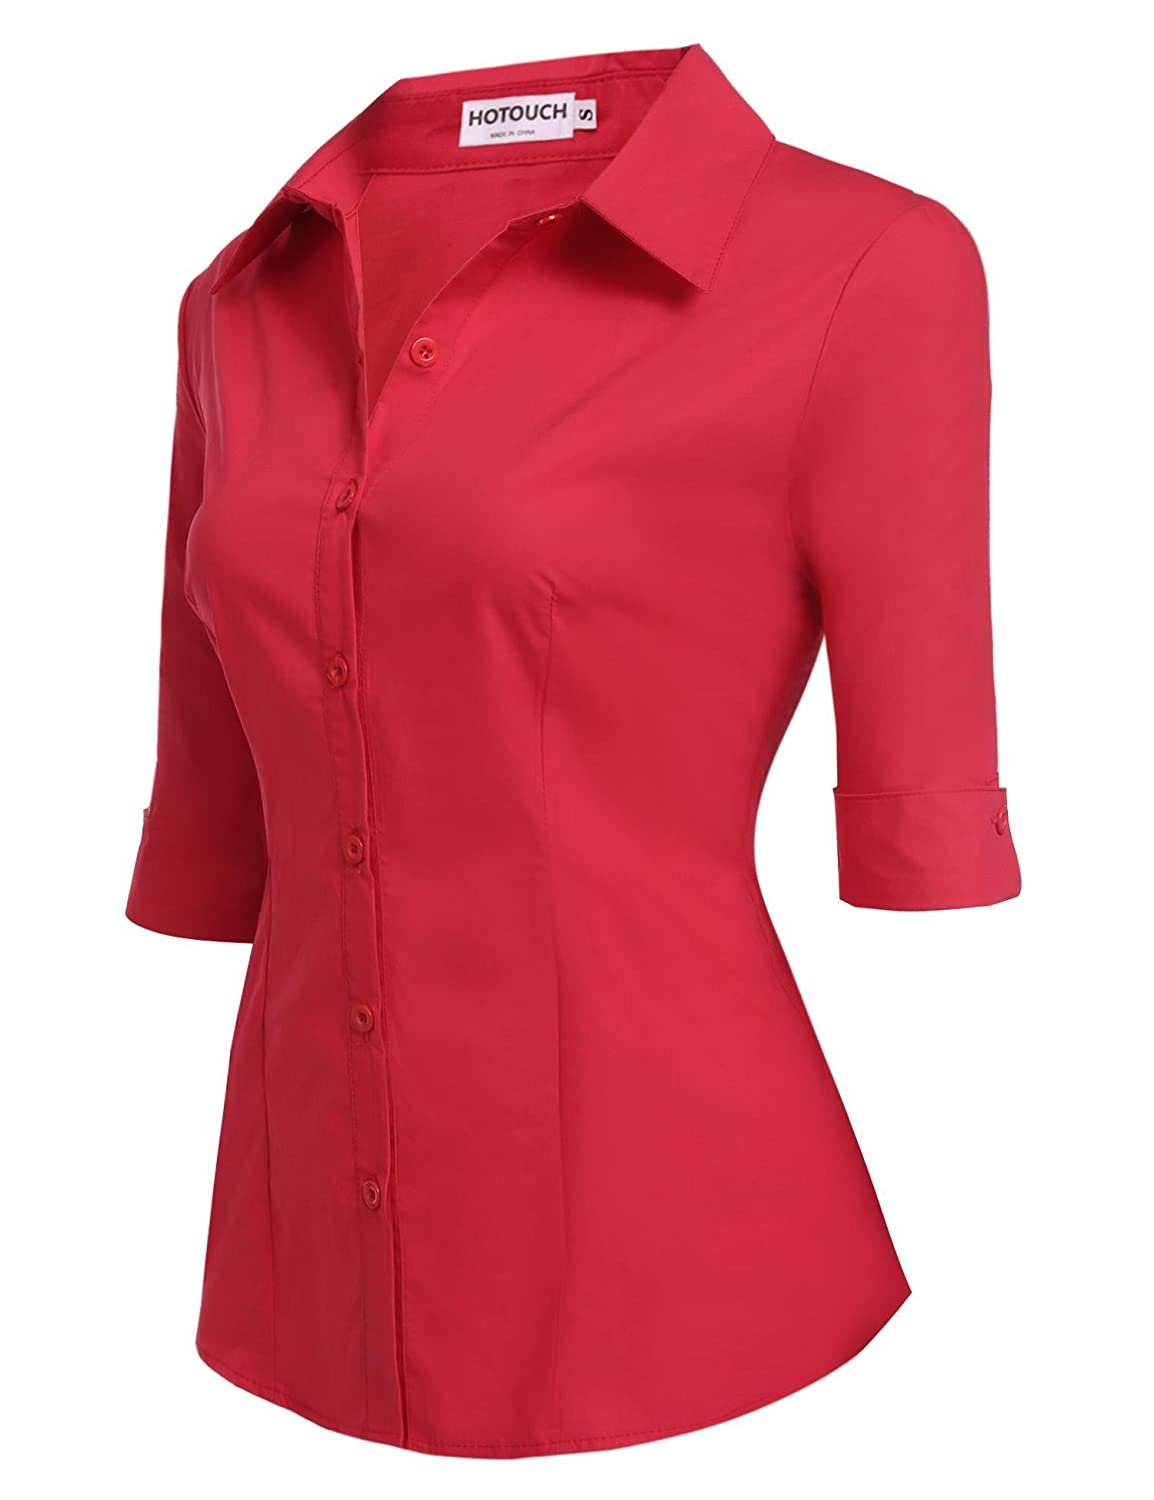 Hotouch Womens Cotton Basic Simple Button Down Shirt Slim Fit Formal Dress Shirts